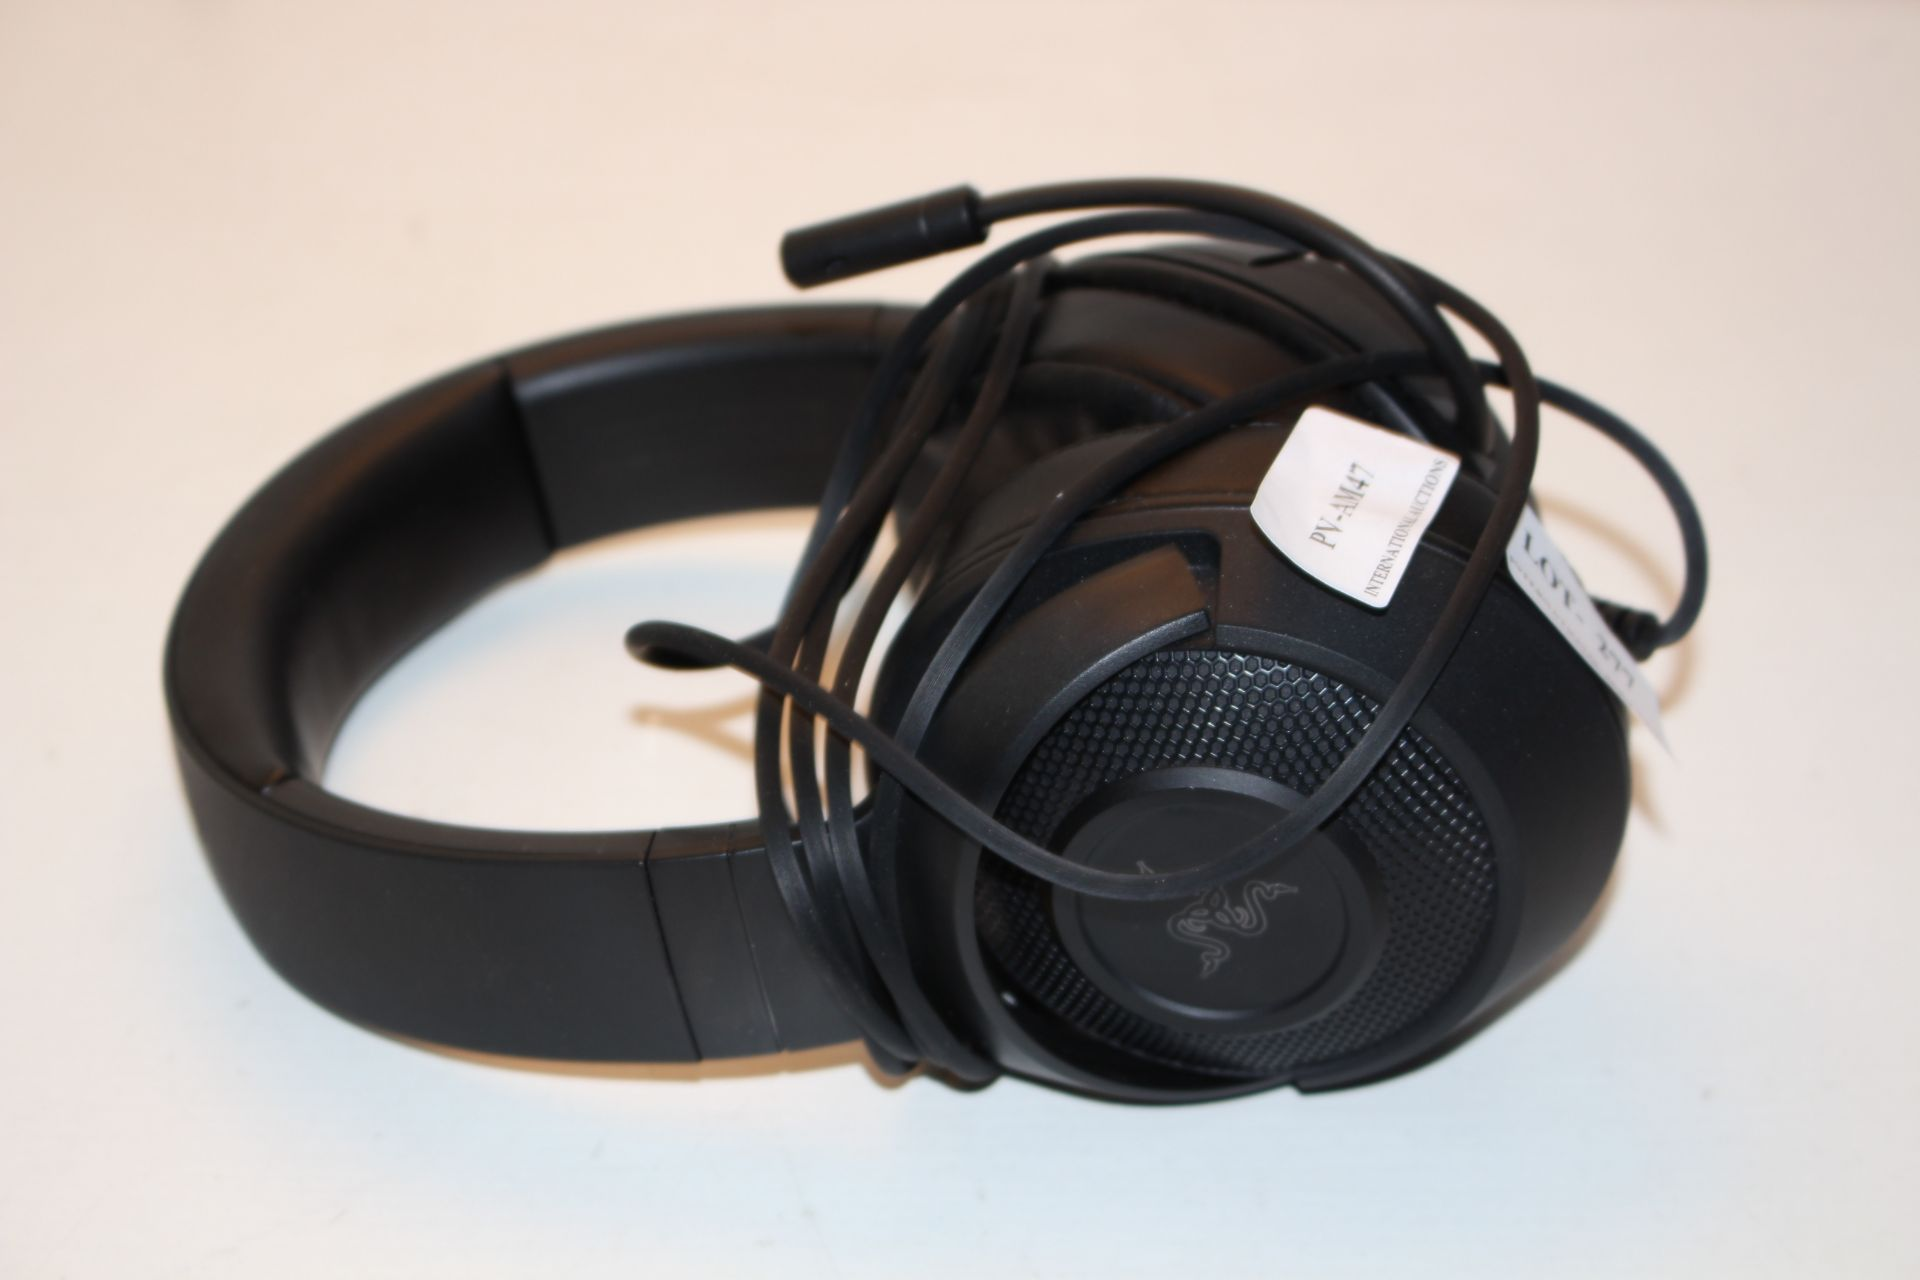 UNBOXED RAZER GAMING HEADSET RRP £59.99Condition ReportAppraisal Available on Request- All Items are